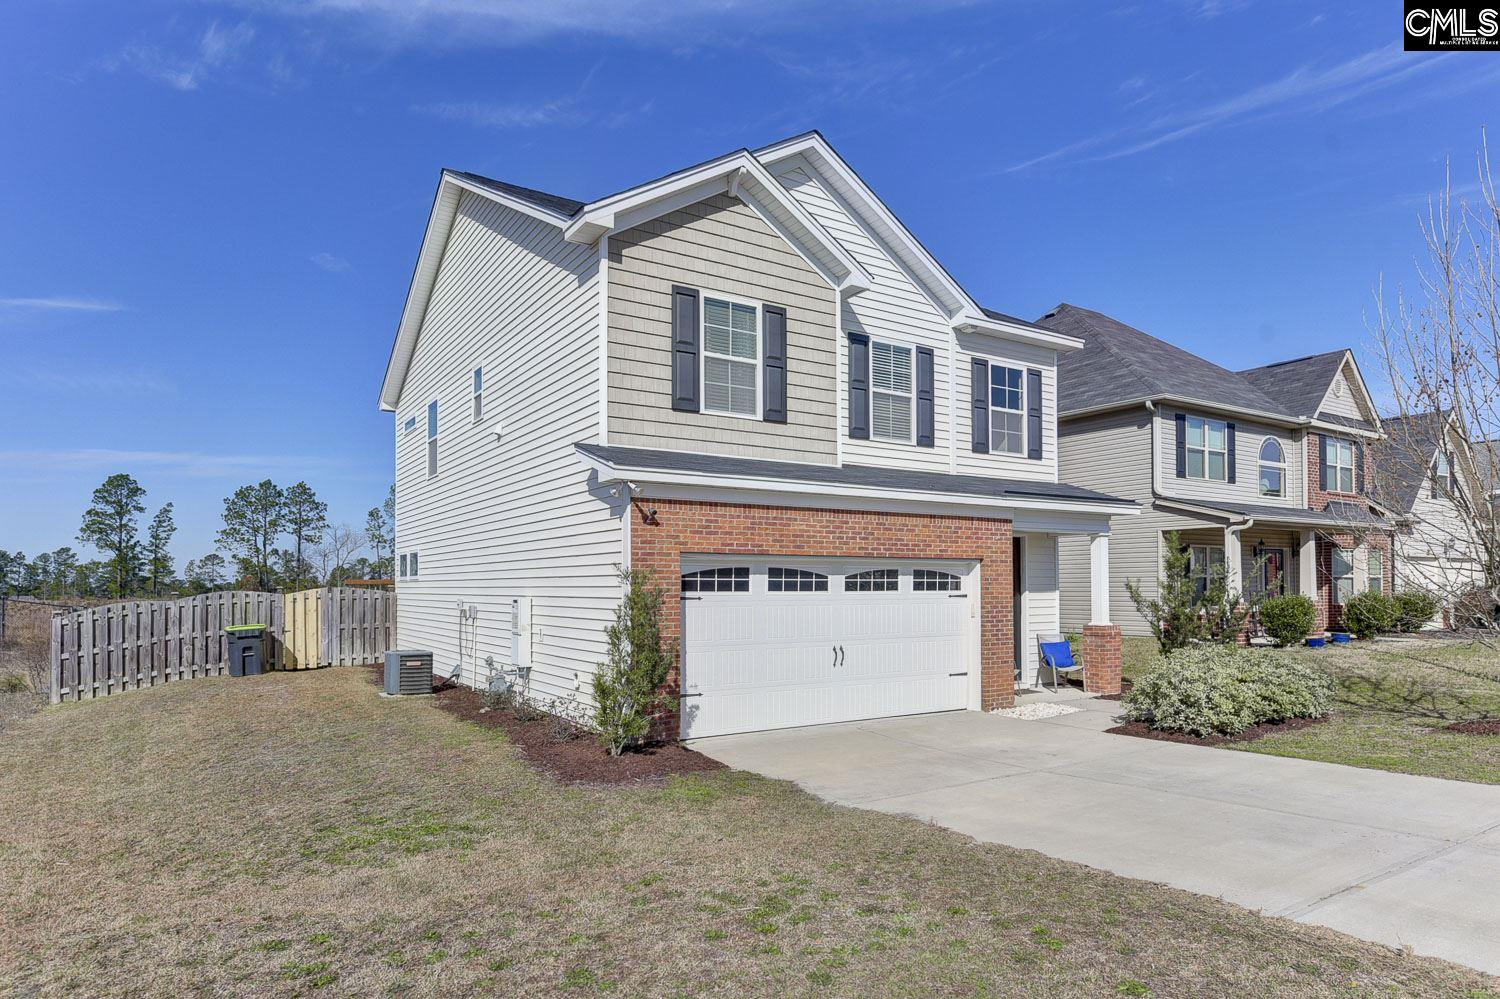 419 Nolancrest Lexington, SC 29072-6713